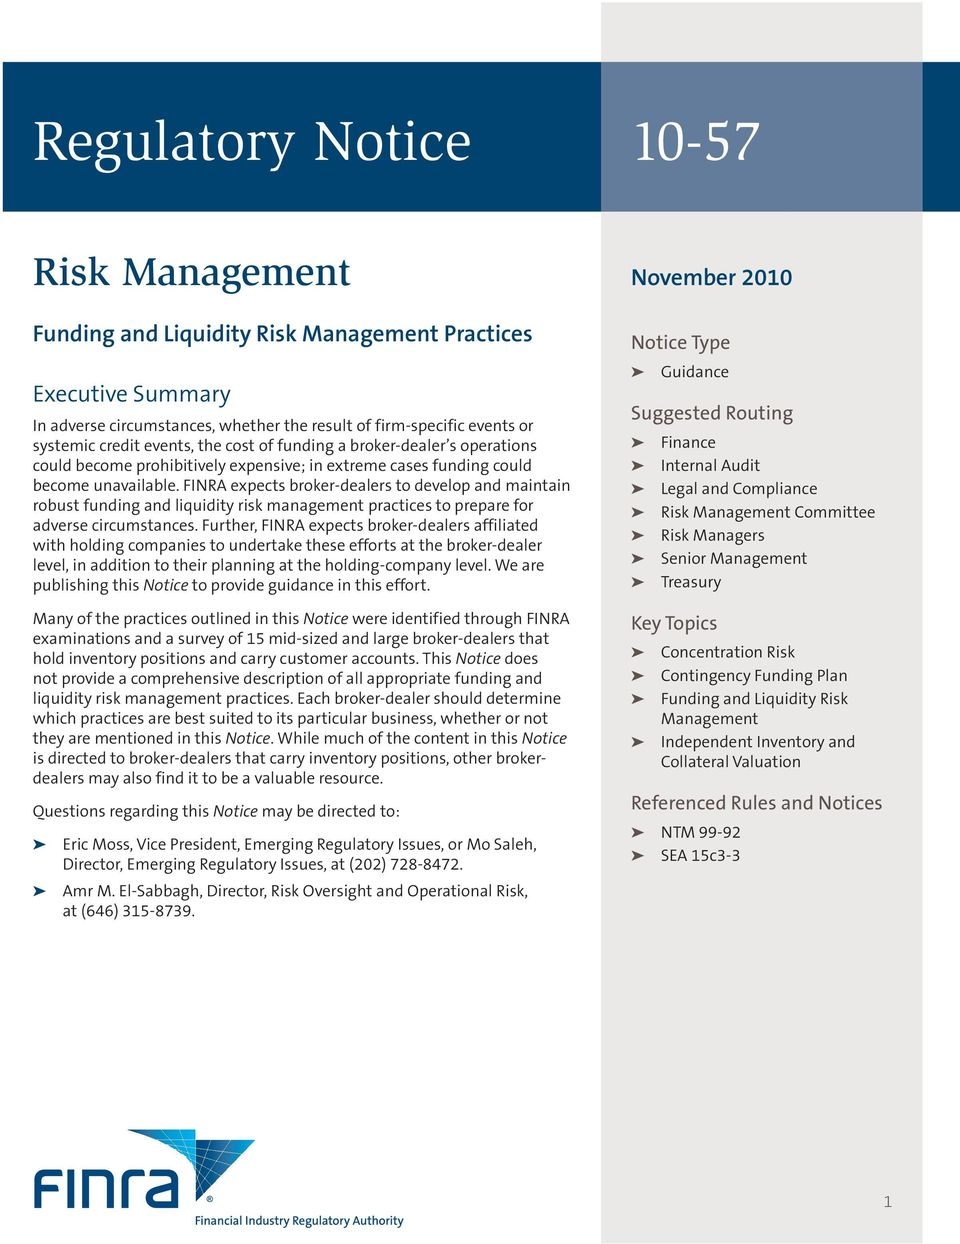 FINRA expects broker-dealers to develop and maintain robust funding and liquidity risk management practices to prepare for adverse circumstances.